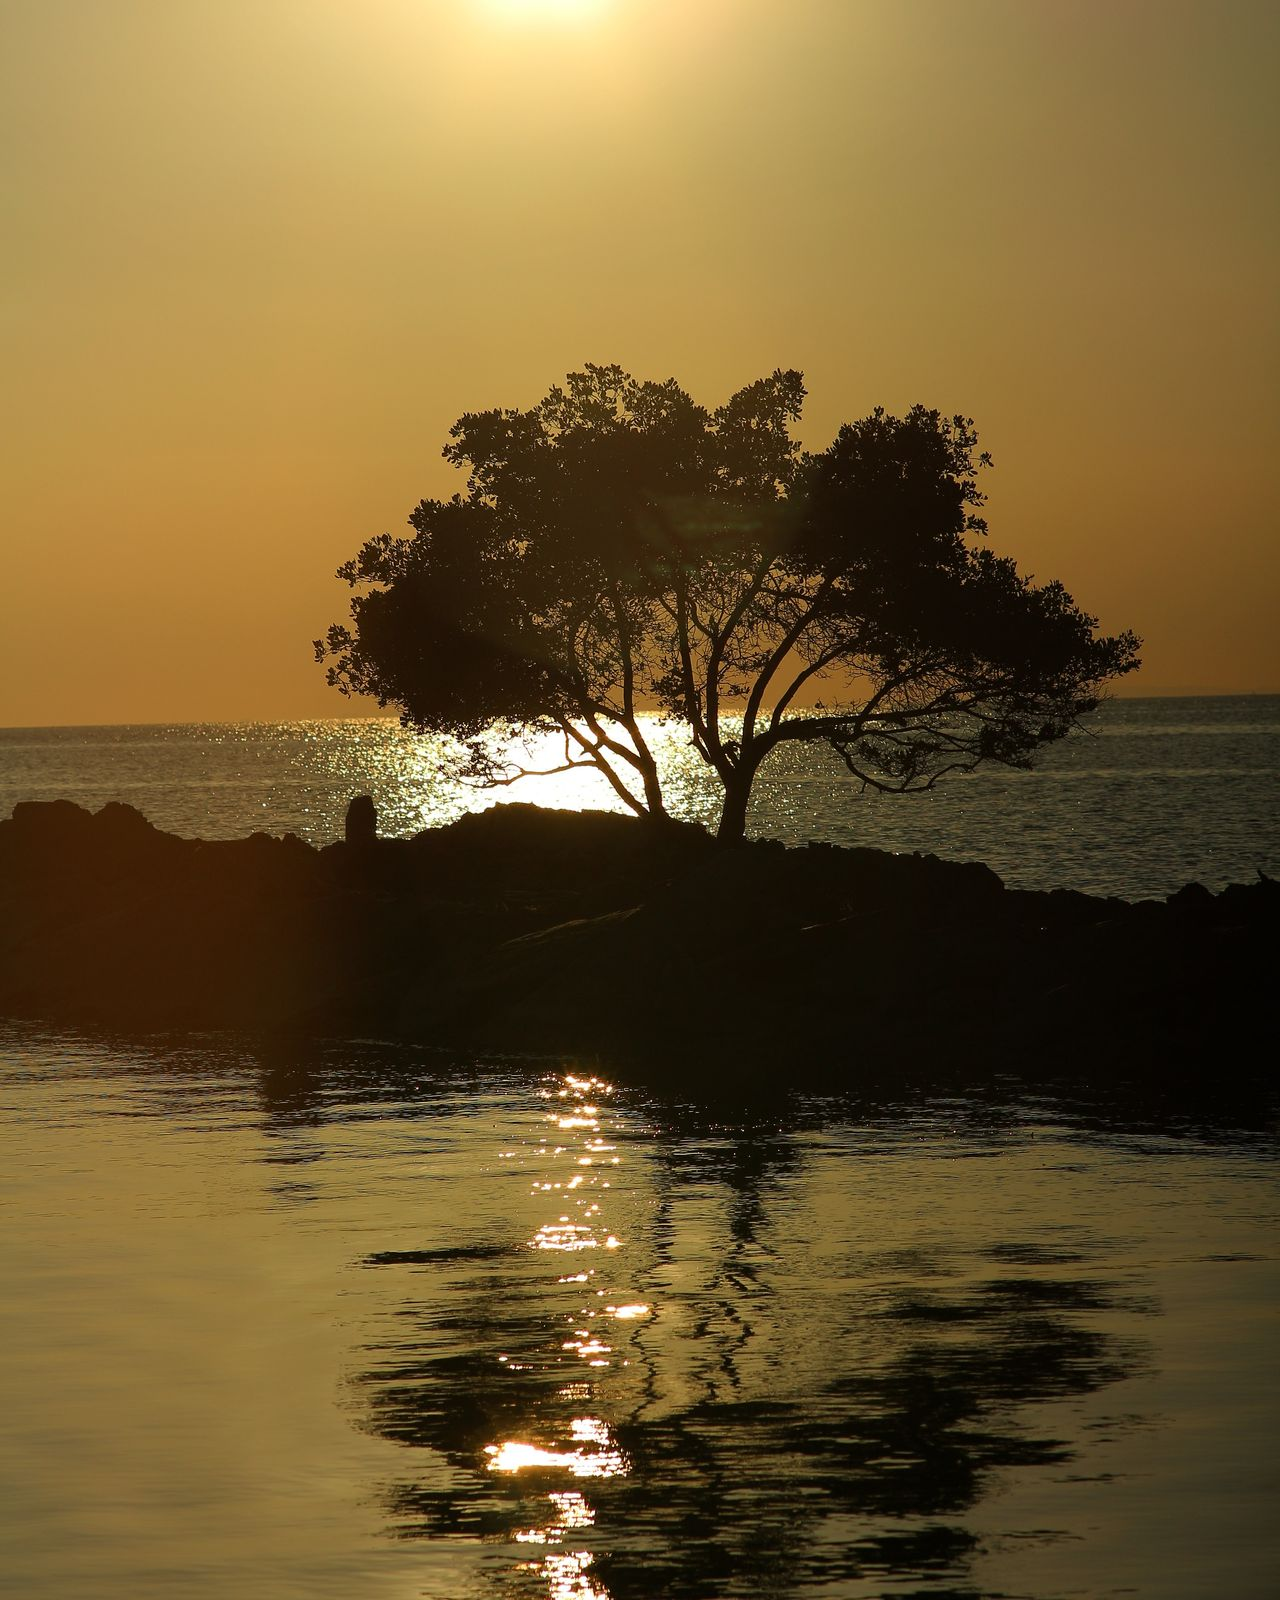 Burot beach in Calatagan, Batangas. Sunset Reflection Water Landscape Tree Silhouette Nature Beauty In Nature Beach Tourism Vacations Beauty In Nature Silhouette Travel Destinations